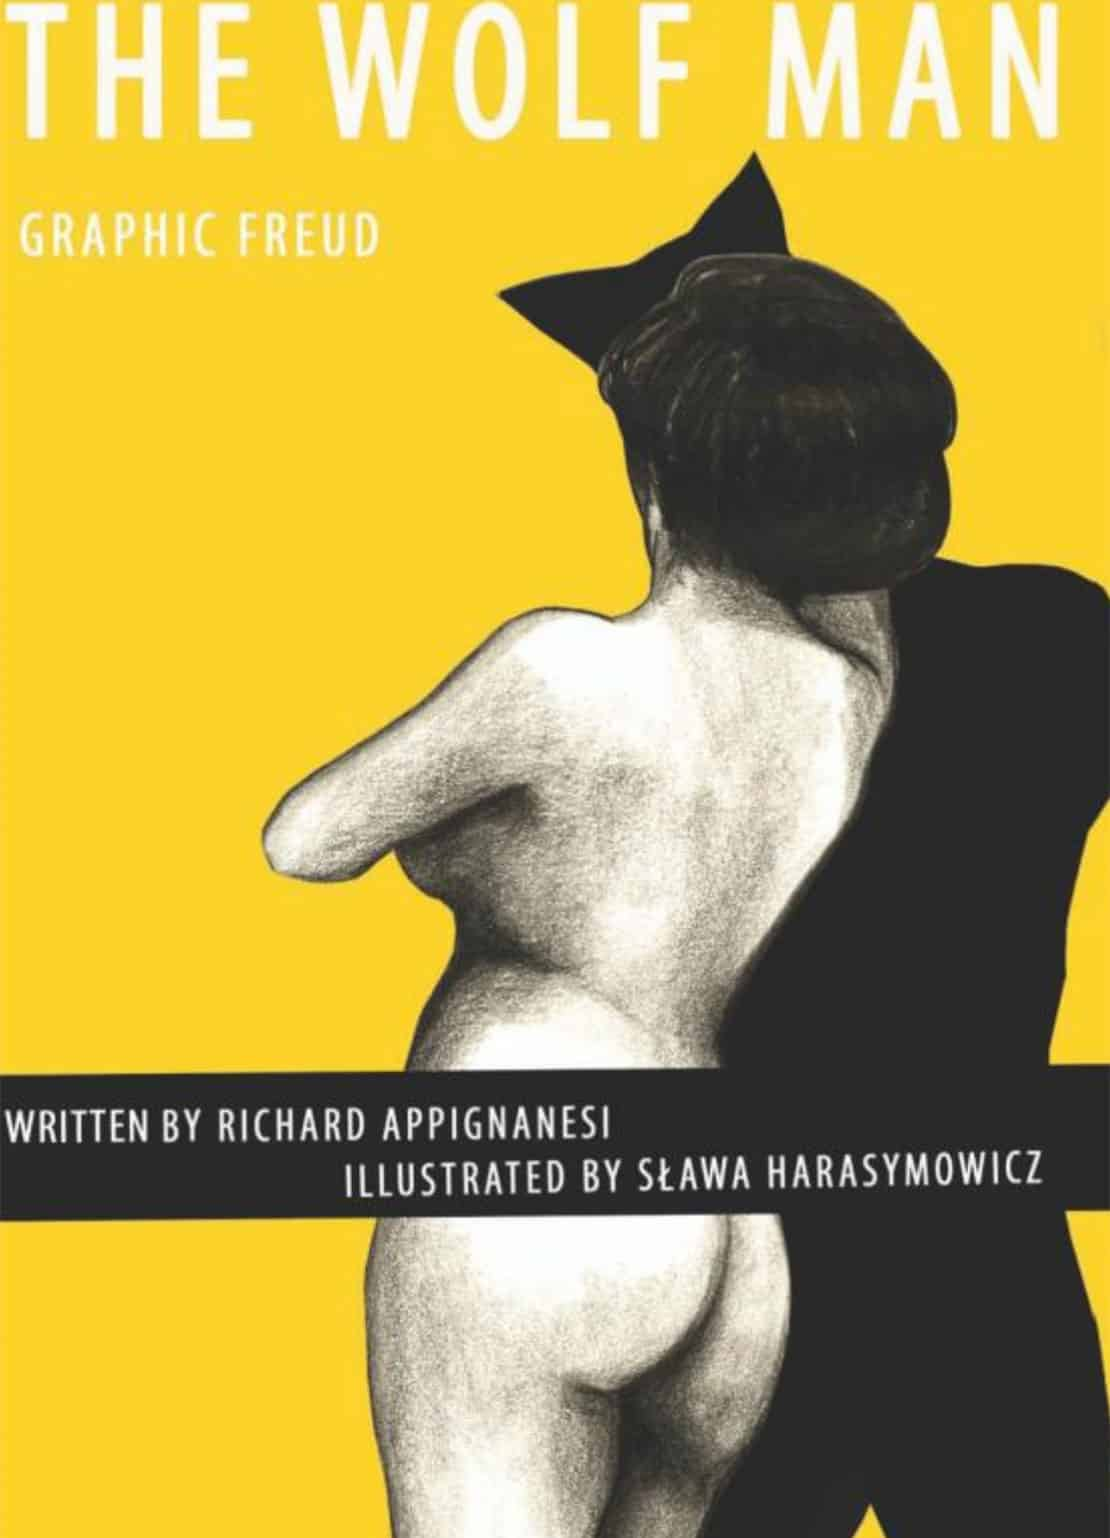 Cover for The Wolf Man (Graphic Freud) by Richard Appignanesi